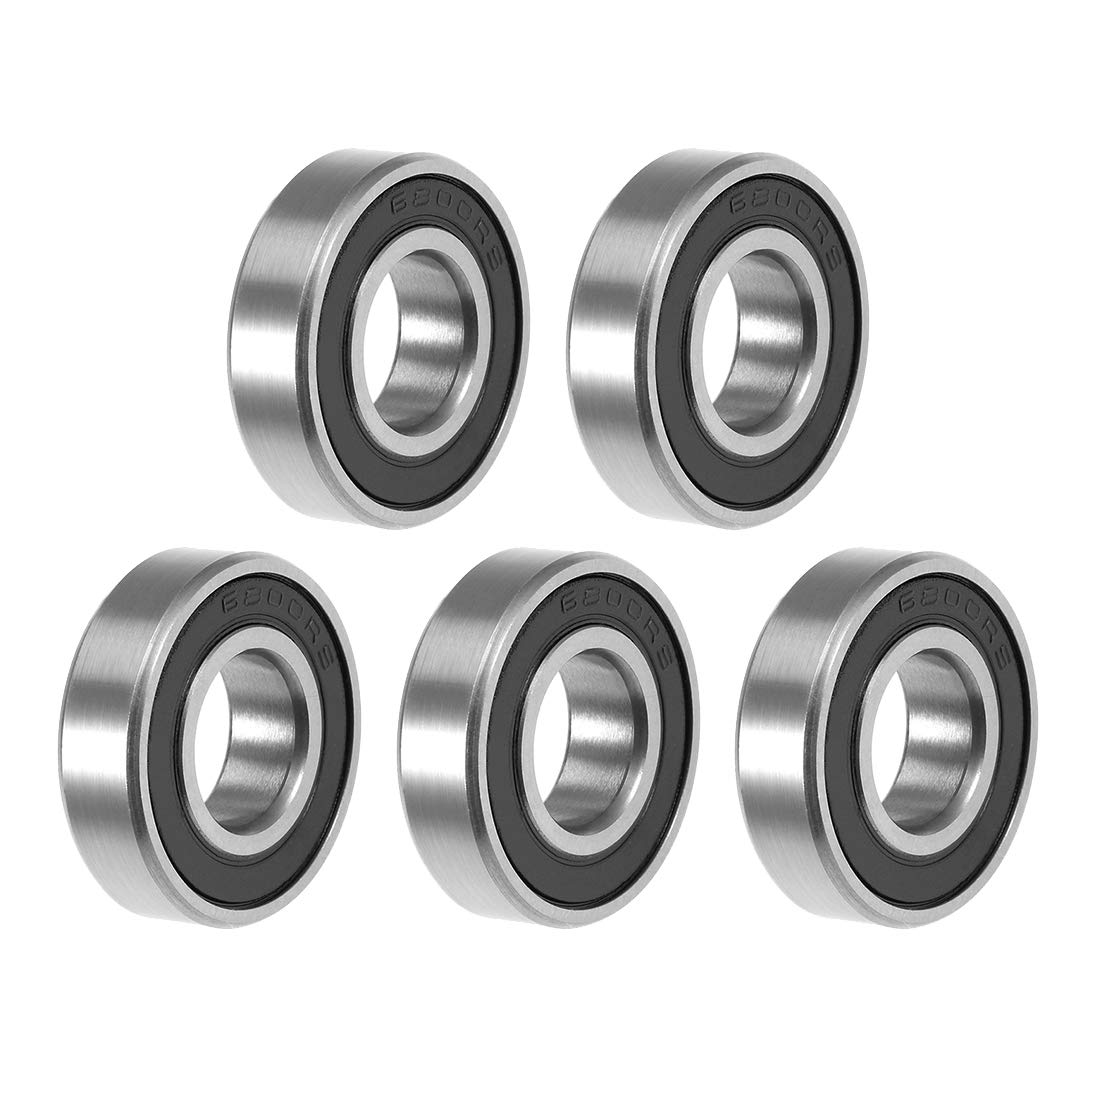 uxcell 2021 spring and summer new 6800-2RS Sales Deep Groove Ball Bearing Sealed Double 10x19x5mm